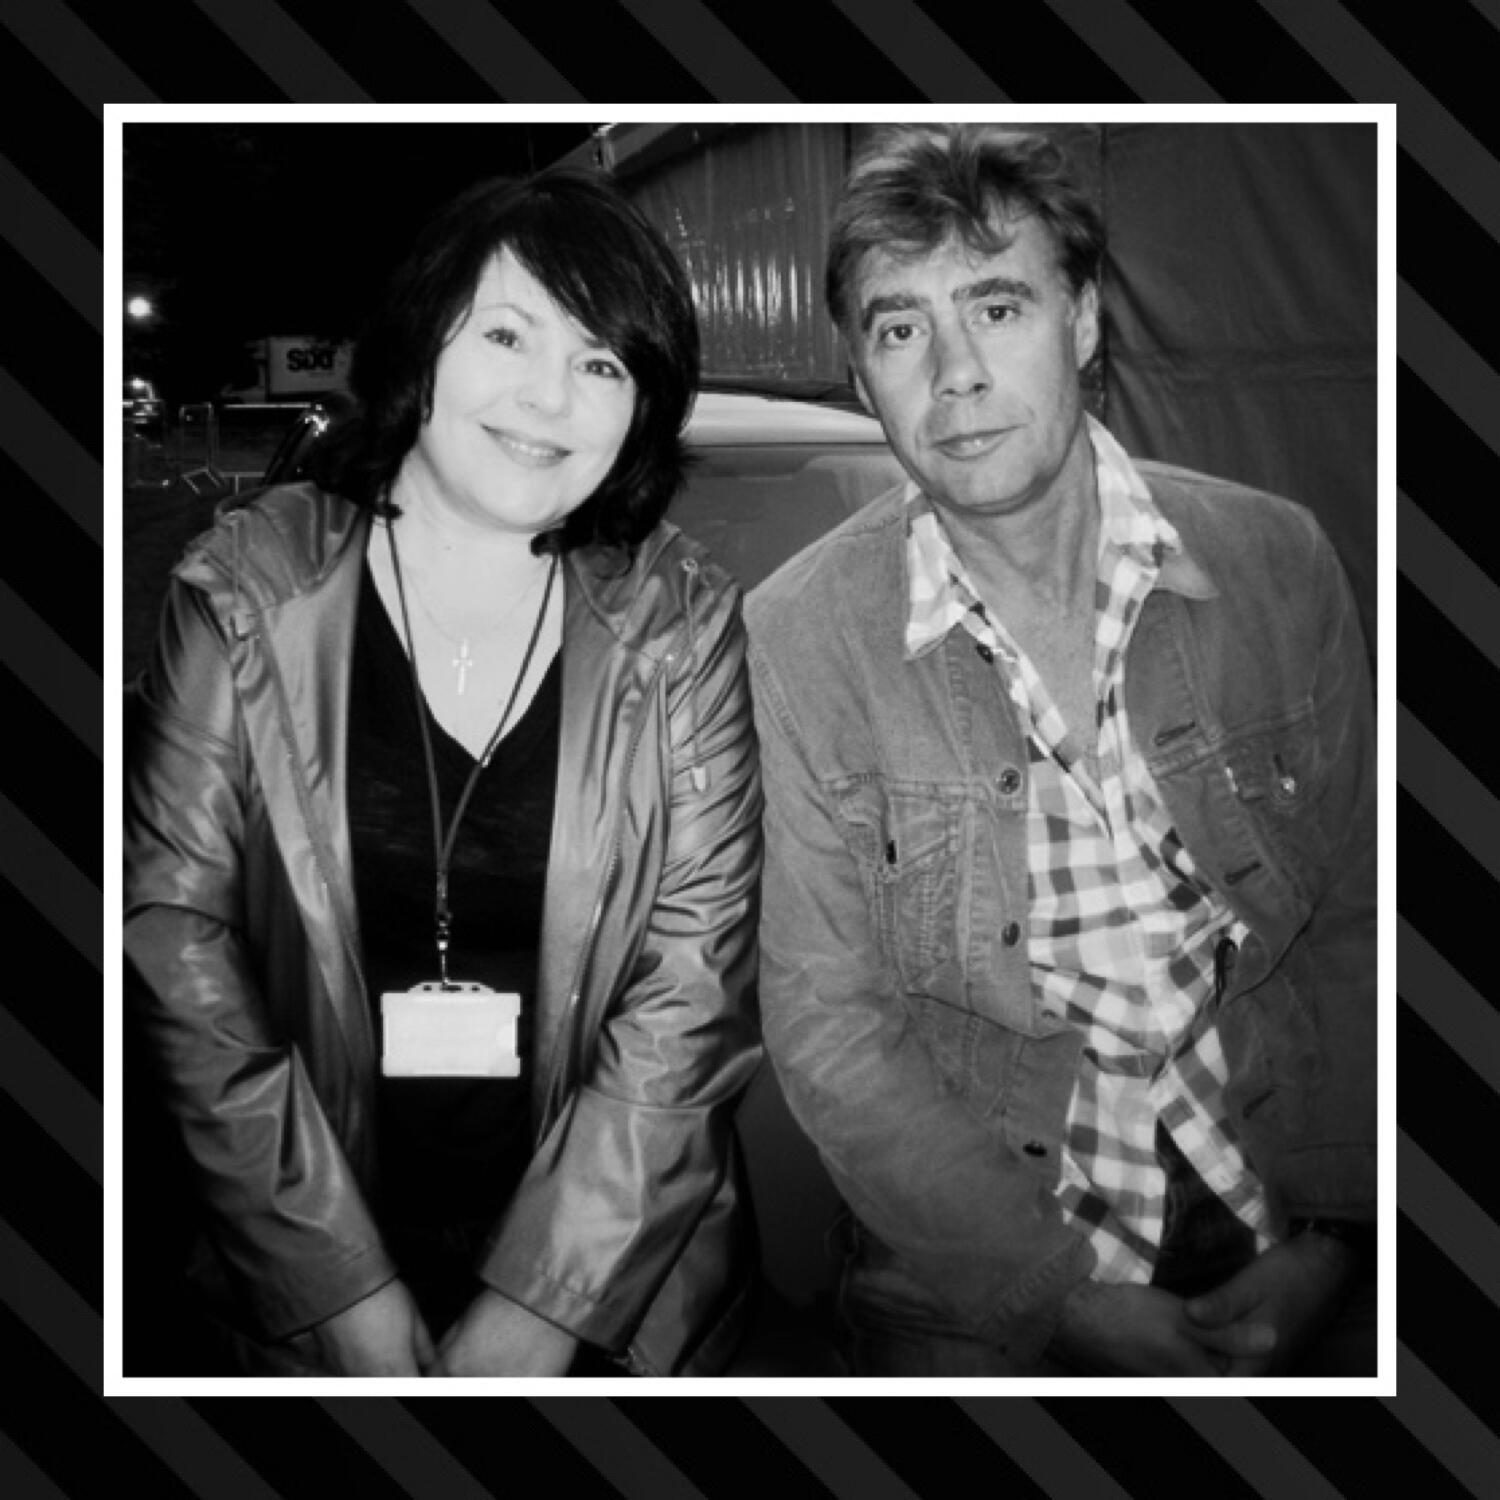 14: The one with The Sex Pistol's Glen Matlock